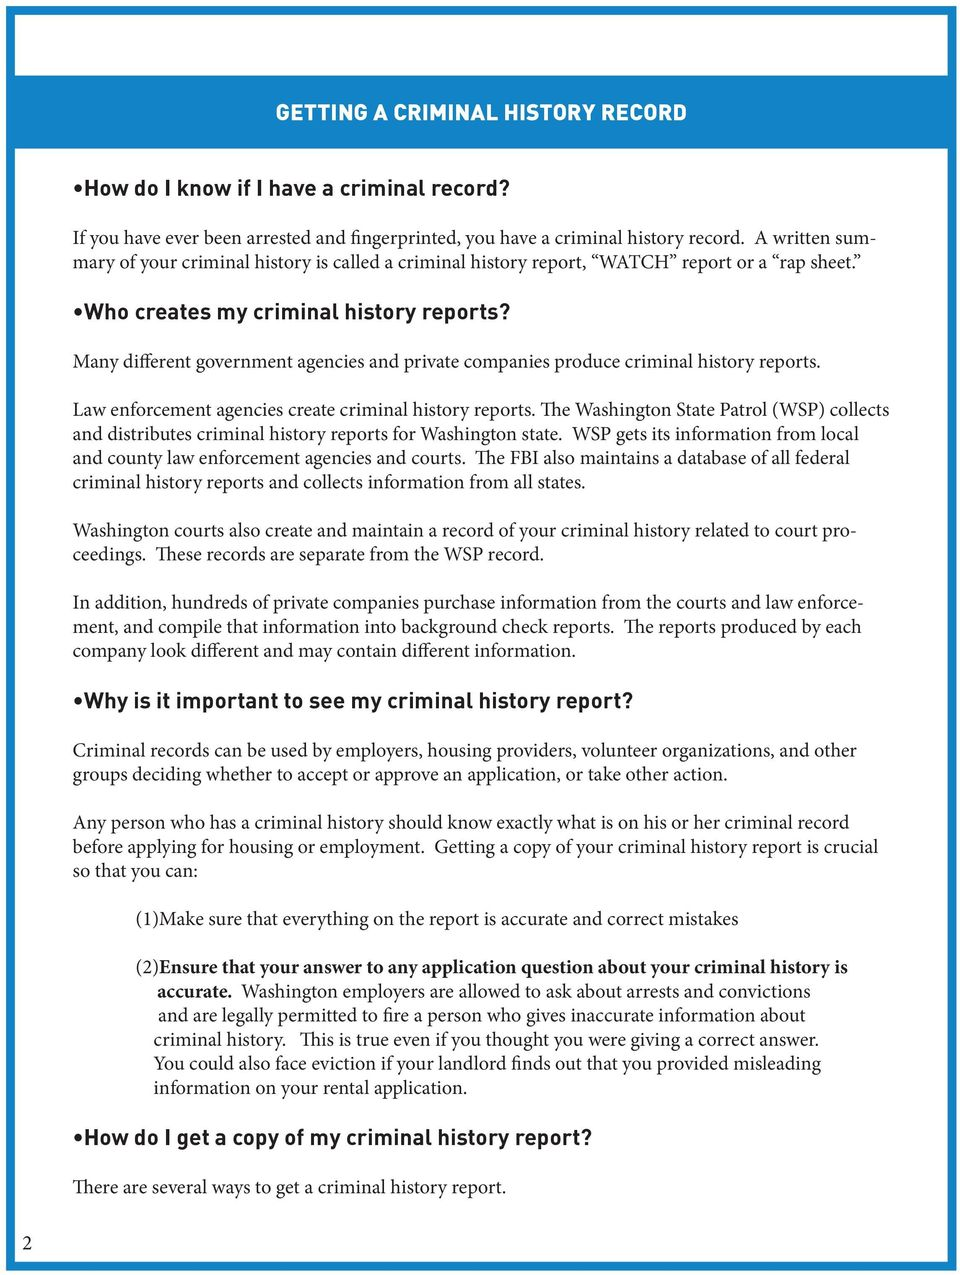 Many different government agencies and private companies produce criminal history reports. Law enforcement agencies create criminal history reports.